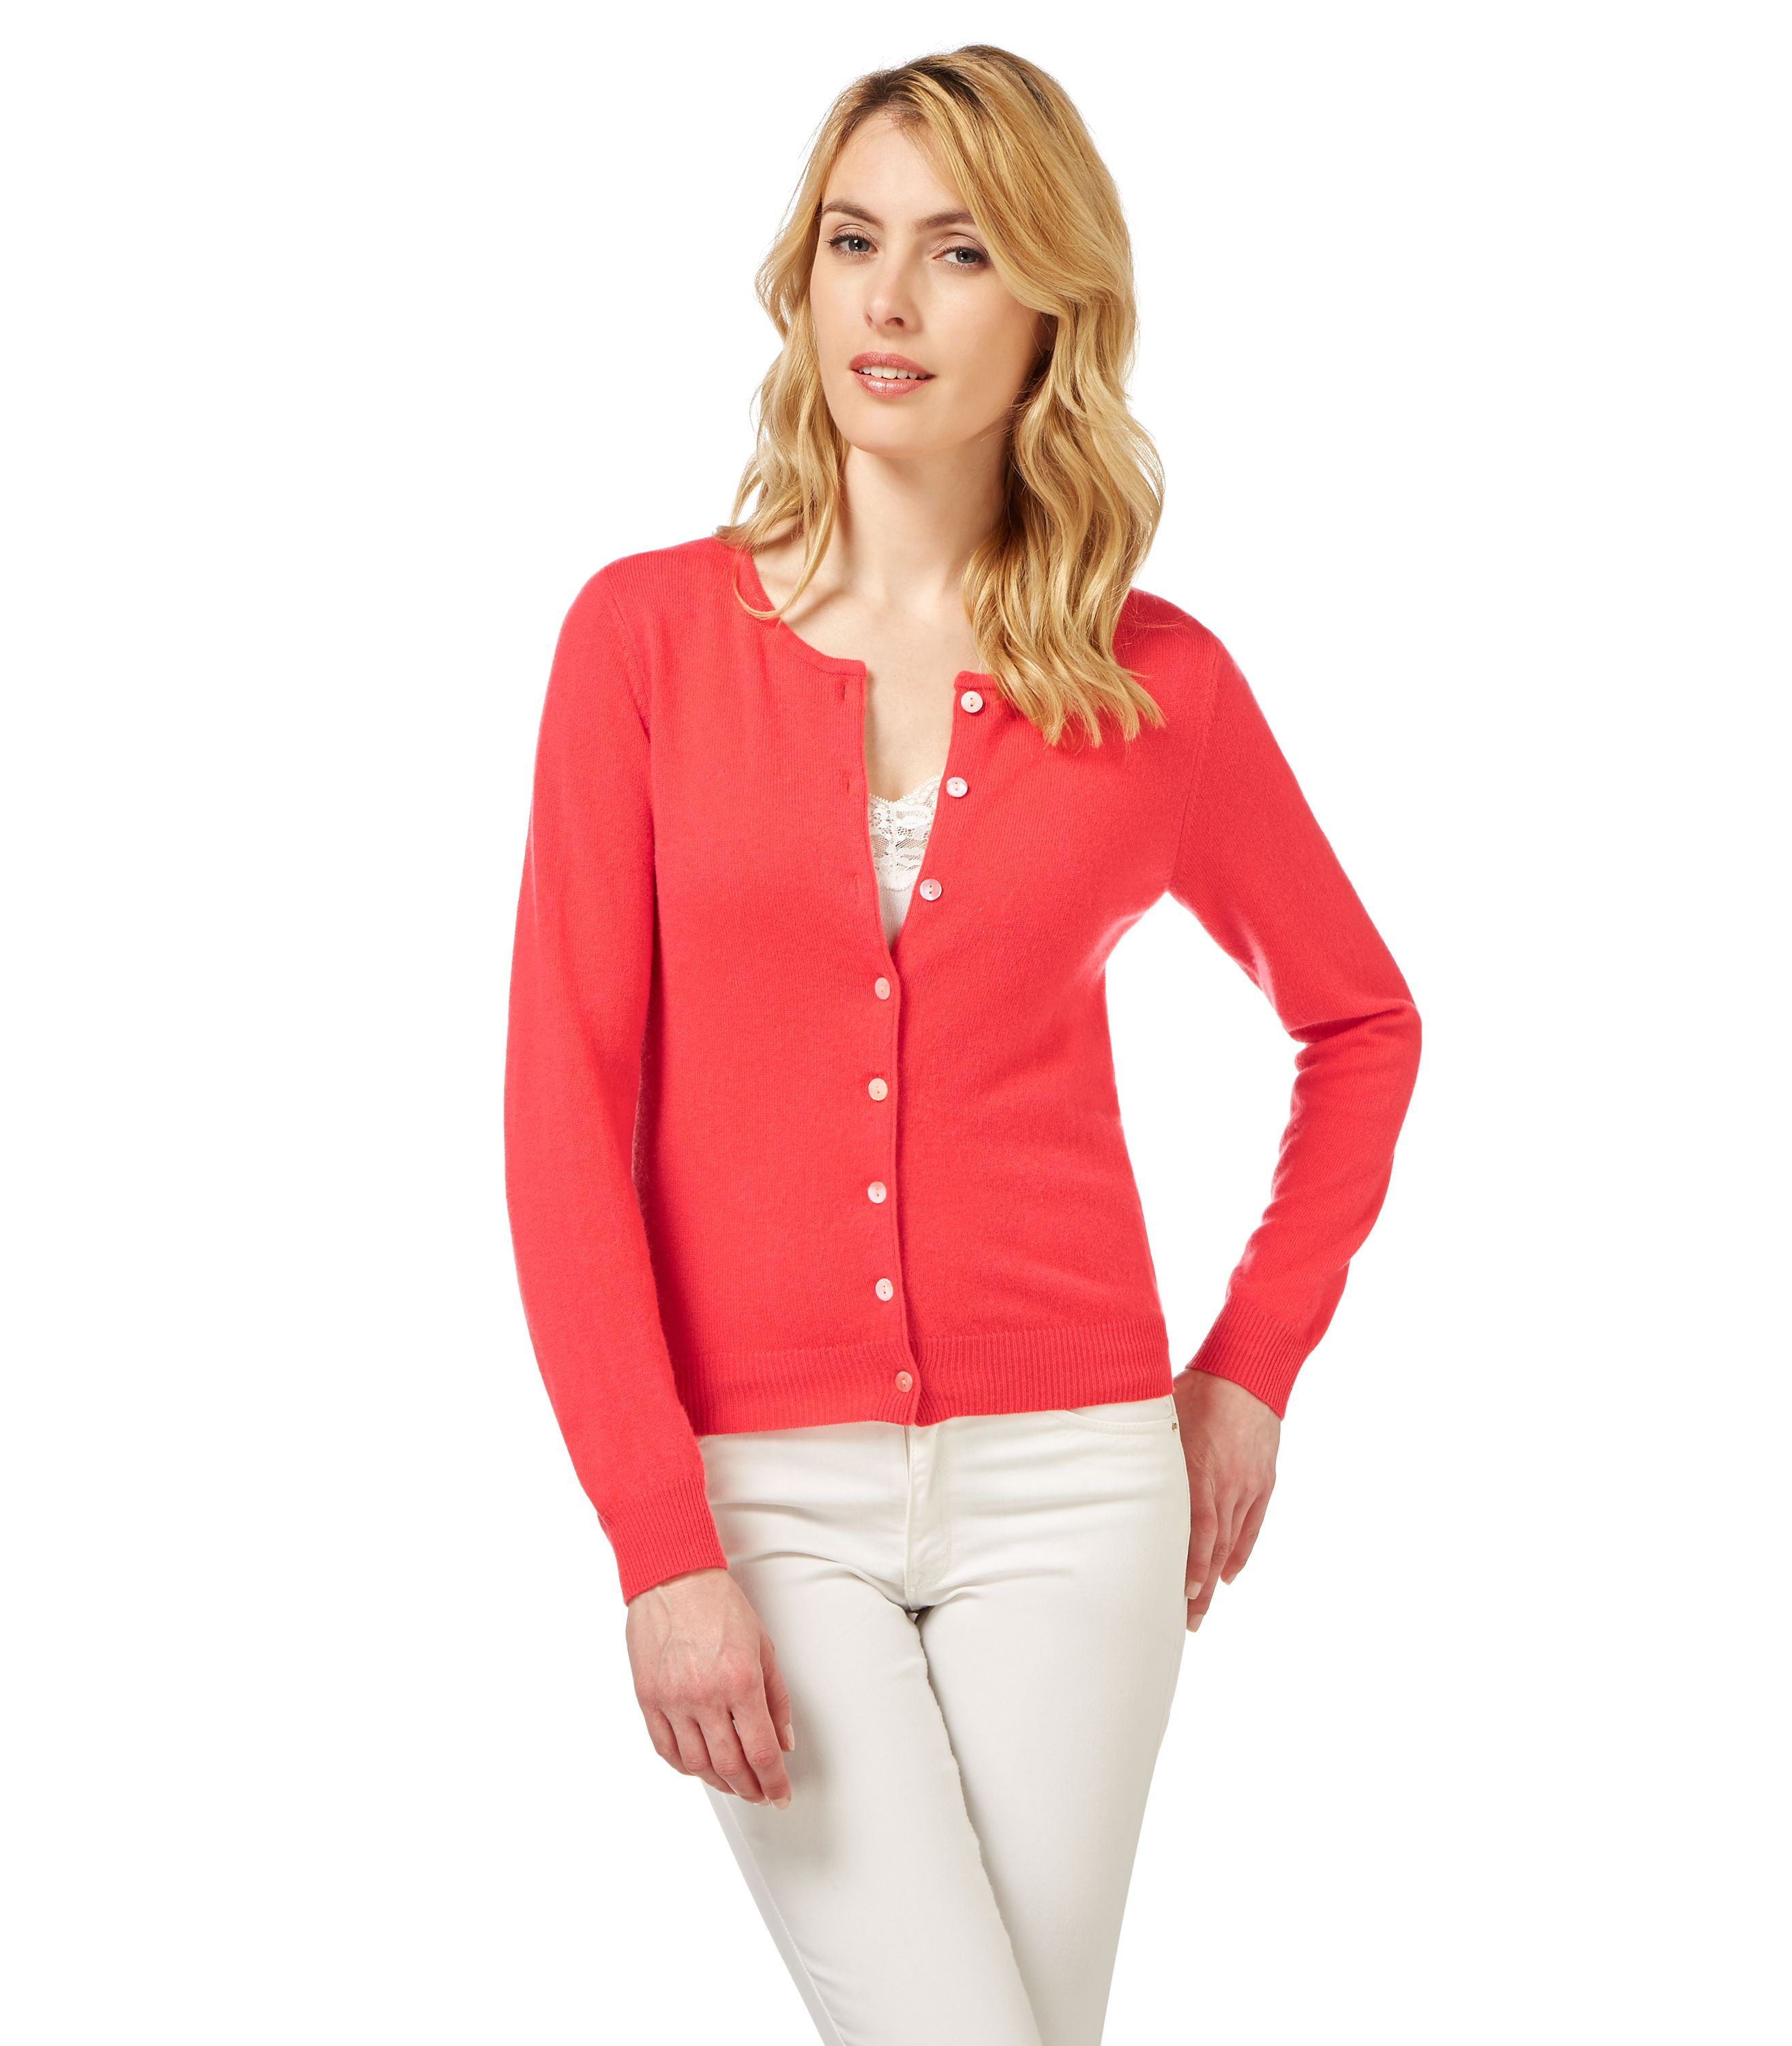 https://www.wooloverslondon.com/women/cardigans/ladies-everyday ...